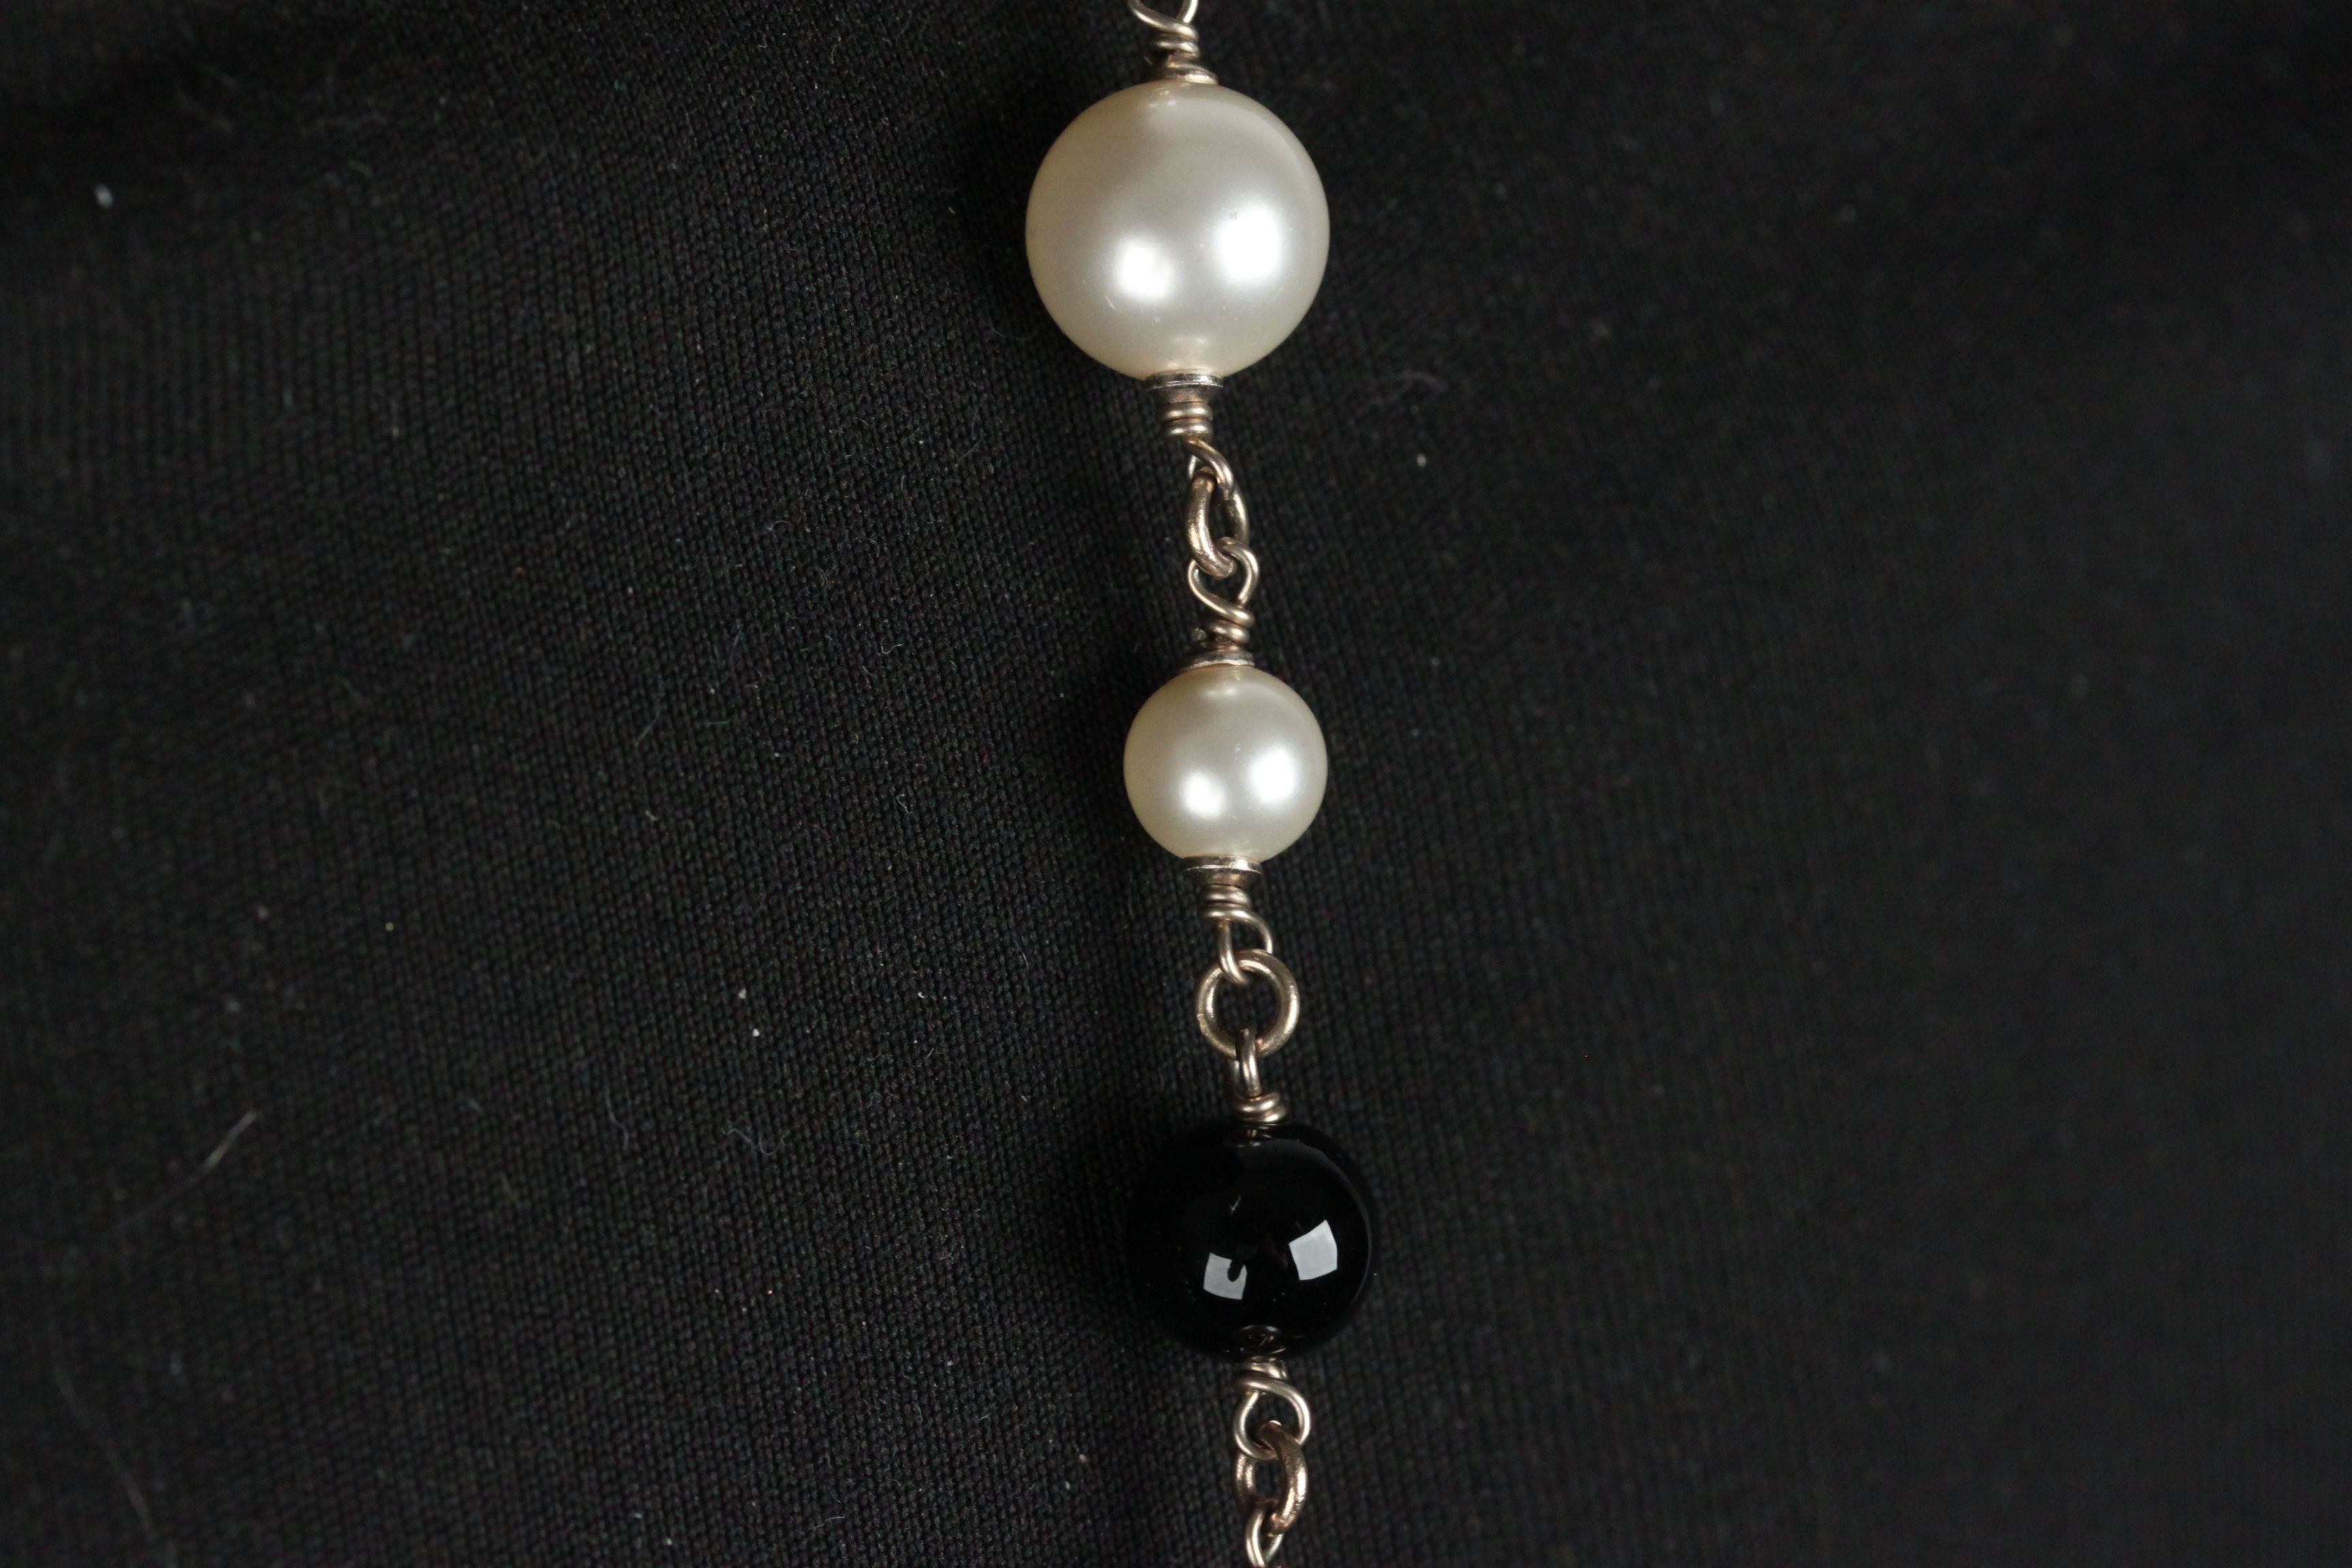 c8a343893ae CHANEL Black and White Long Beaded CAROUSEL NECKLACE For Sale at 1stdibs